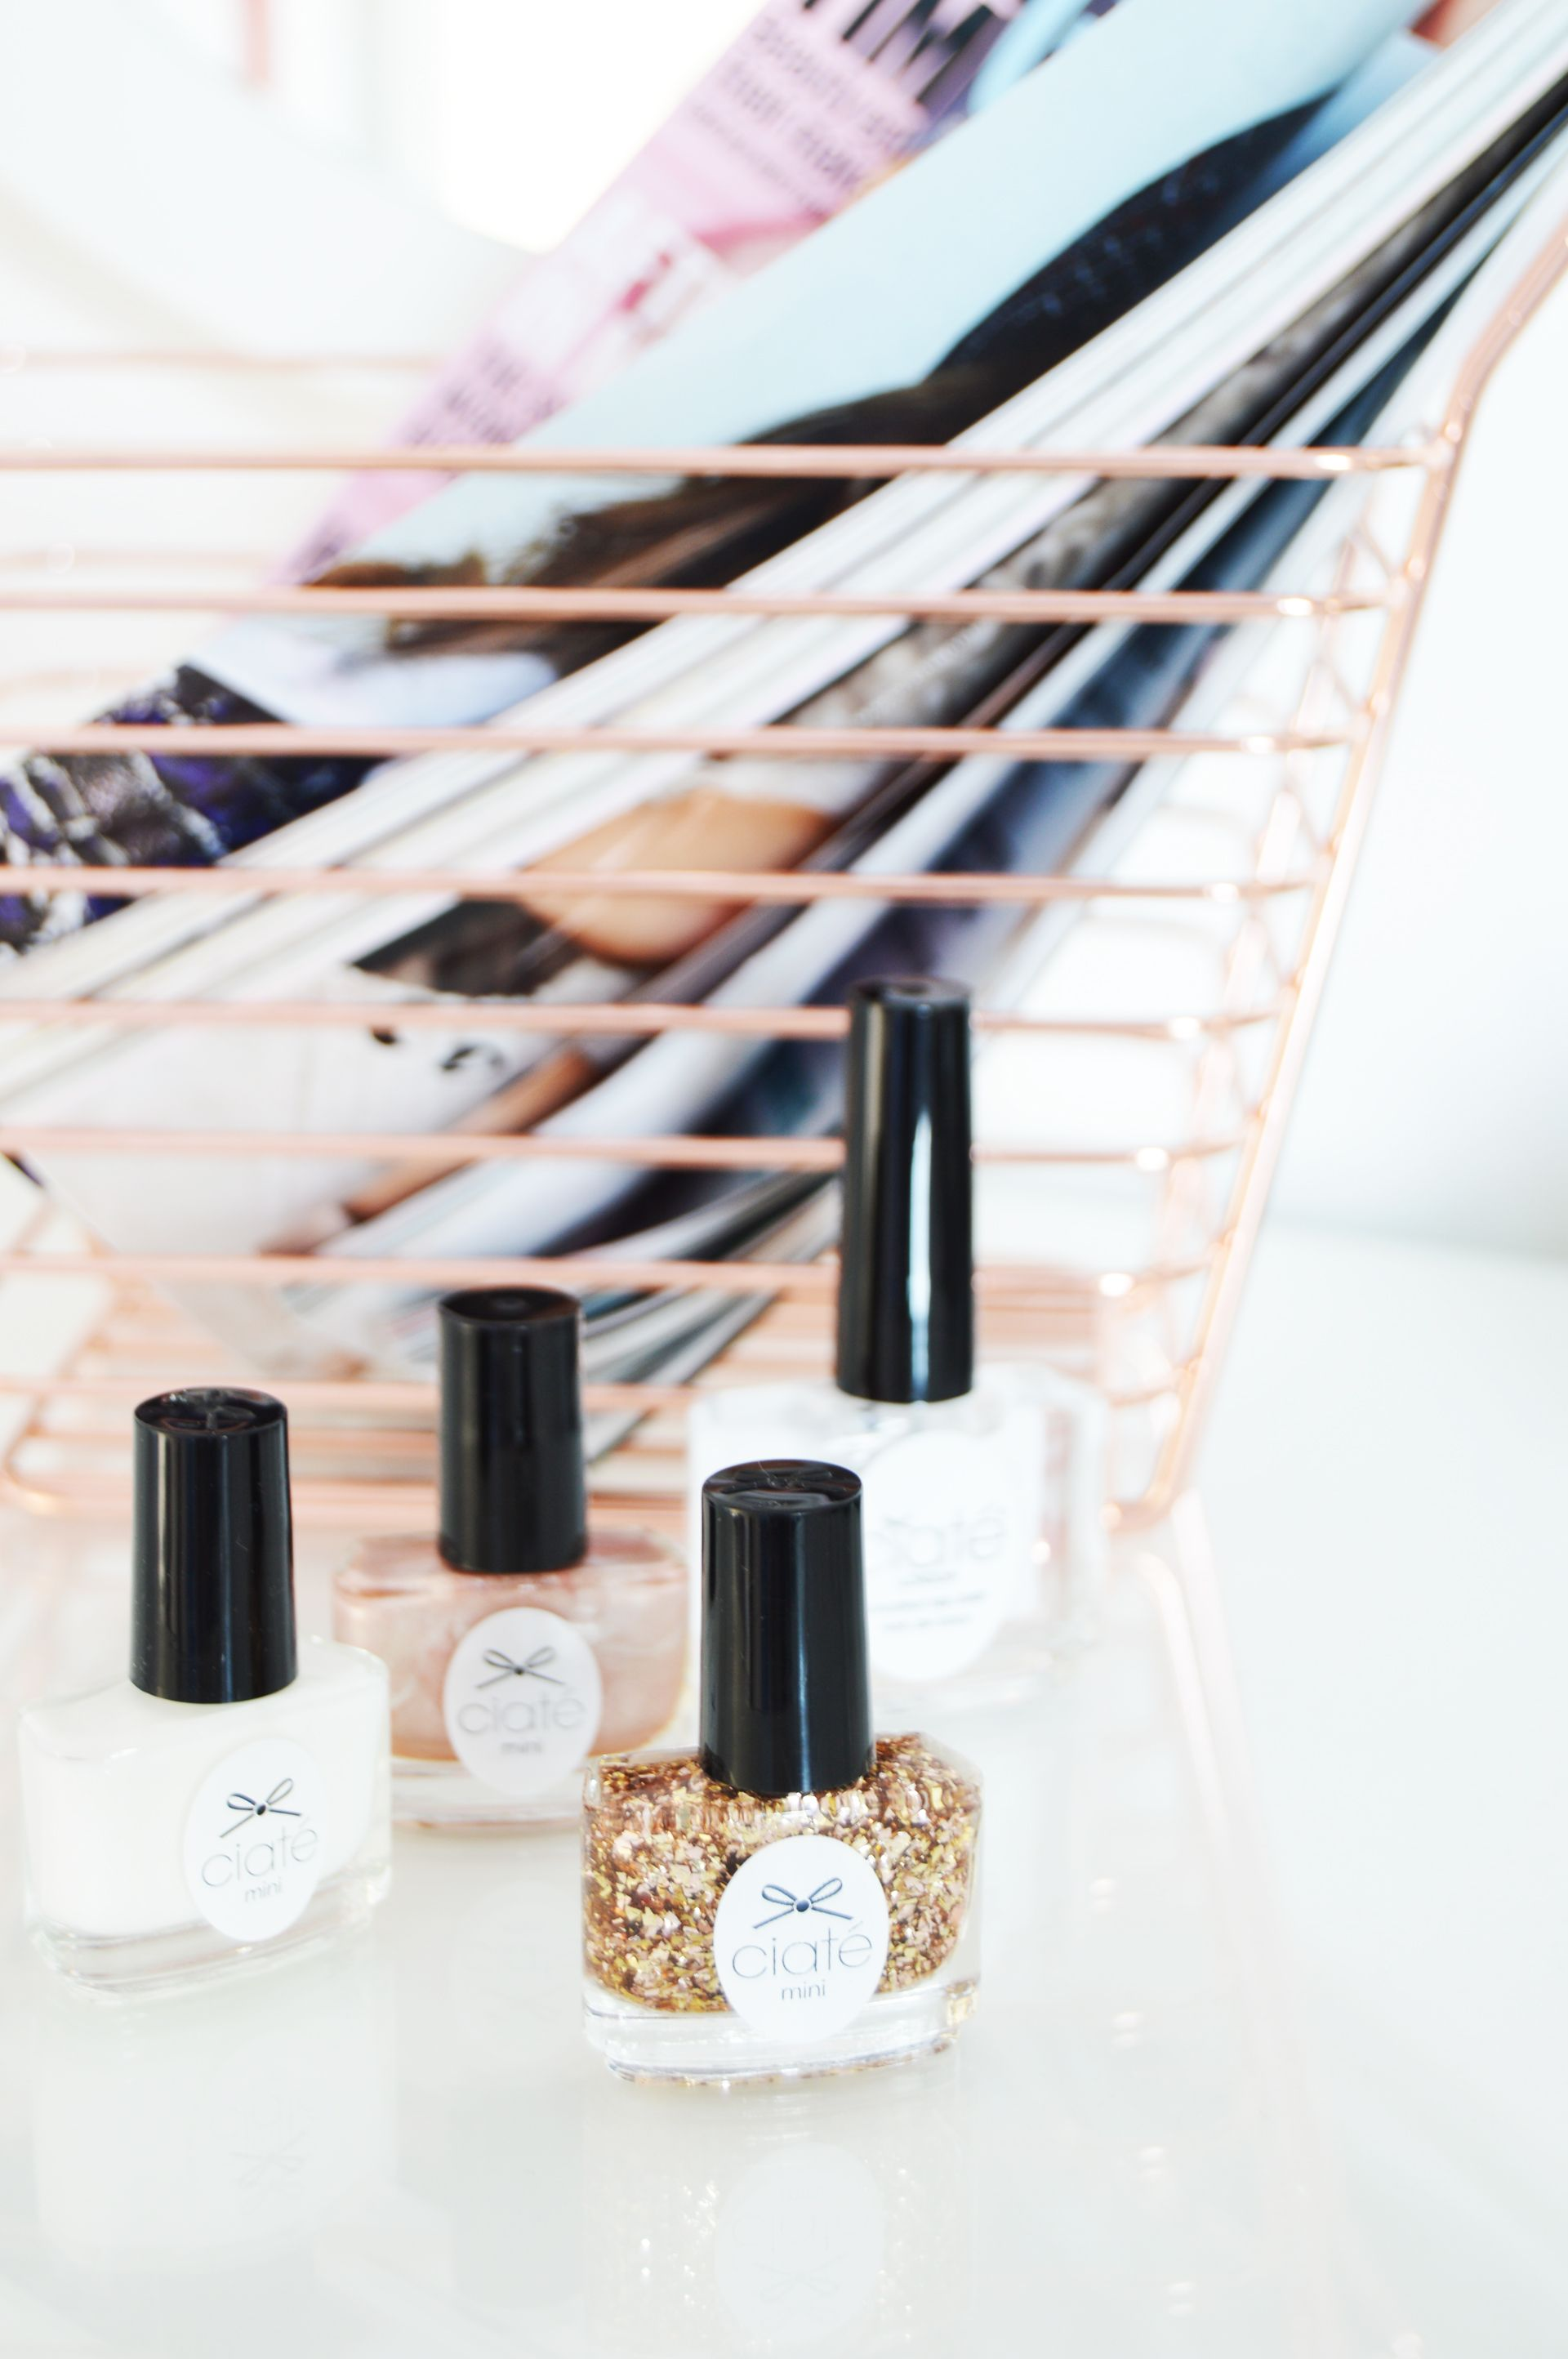 Ciate London South Beach Socialite Nail Polish set has 3 mini nail polishes and 1 full-size coconut scented topcoat. These colours are perfect for summer days and will look flattering on any skin.